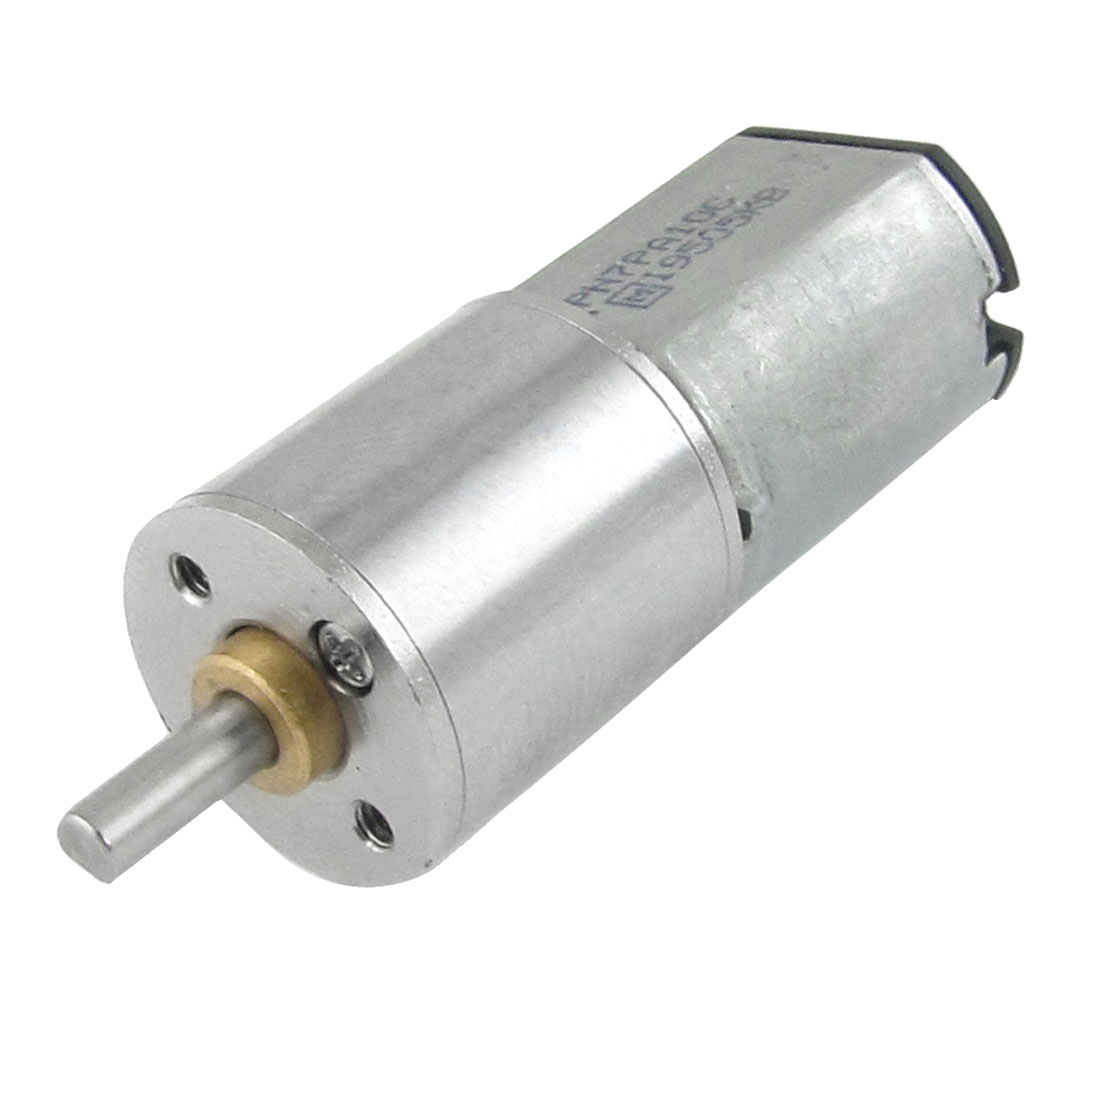 6V 0.3A 60RPM 3mm Diameter Shaft Mini DC Geared Motor